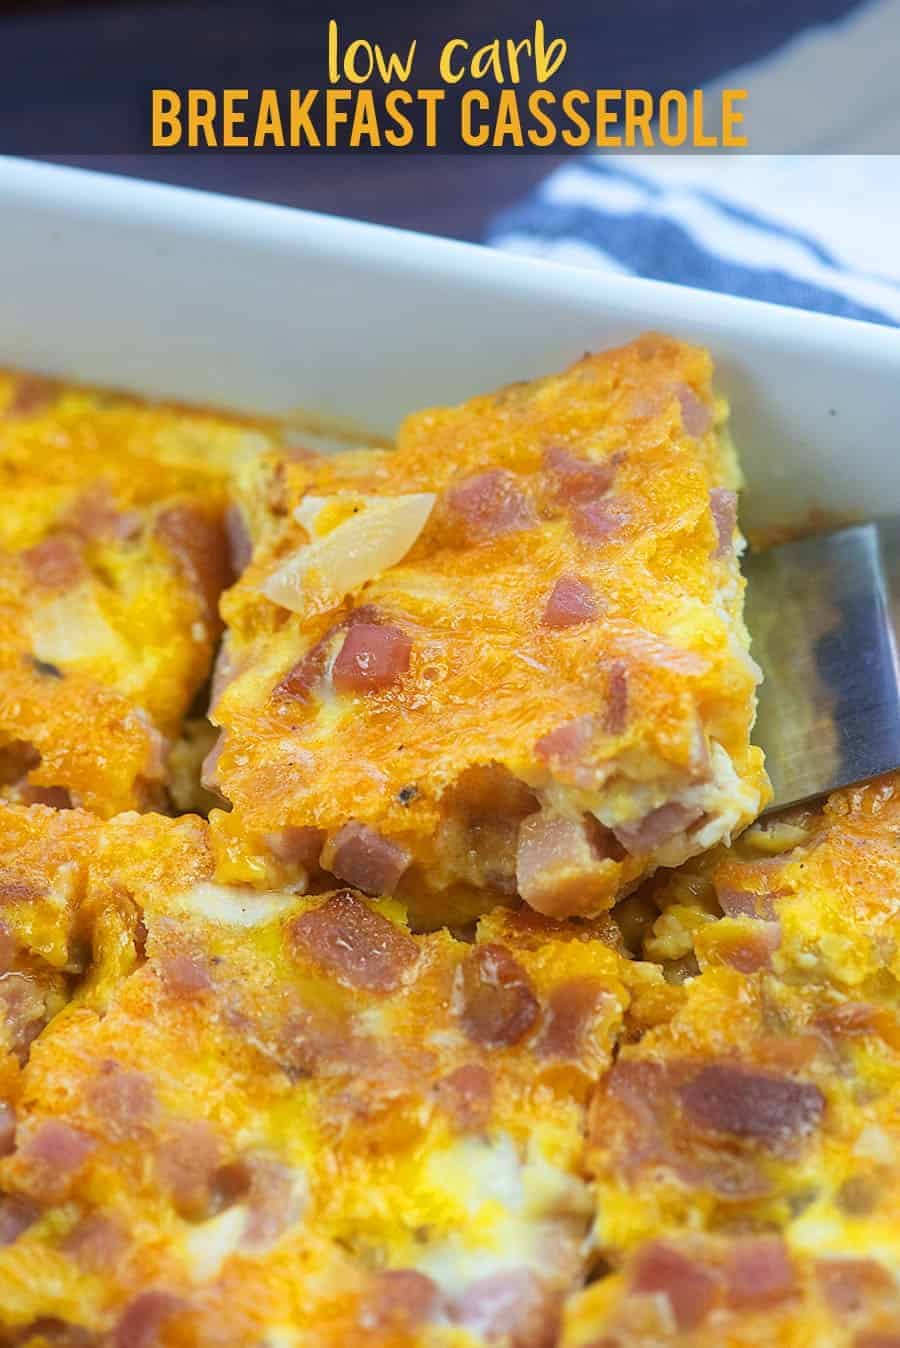 spatula scooping breakfast casserole out of a pan